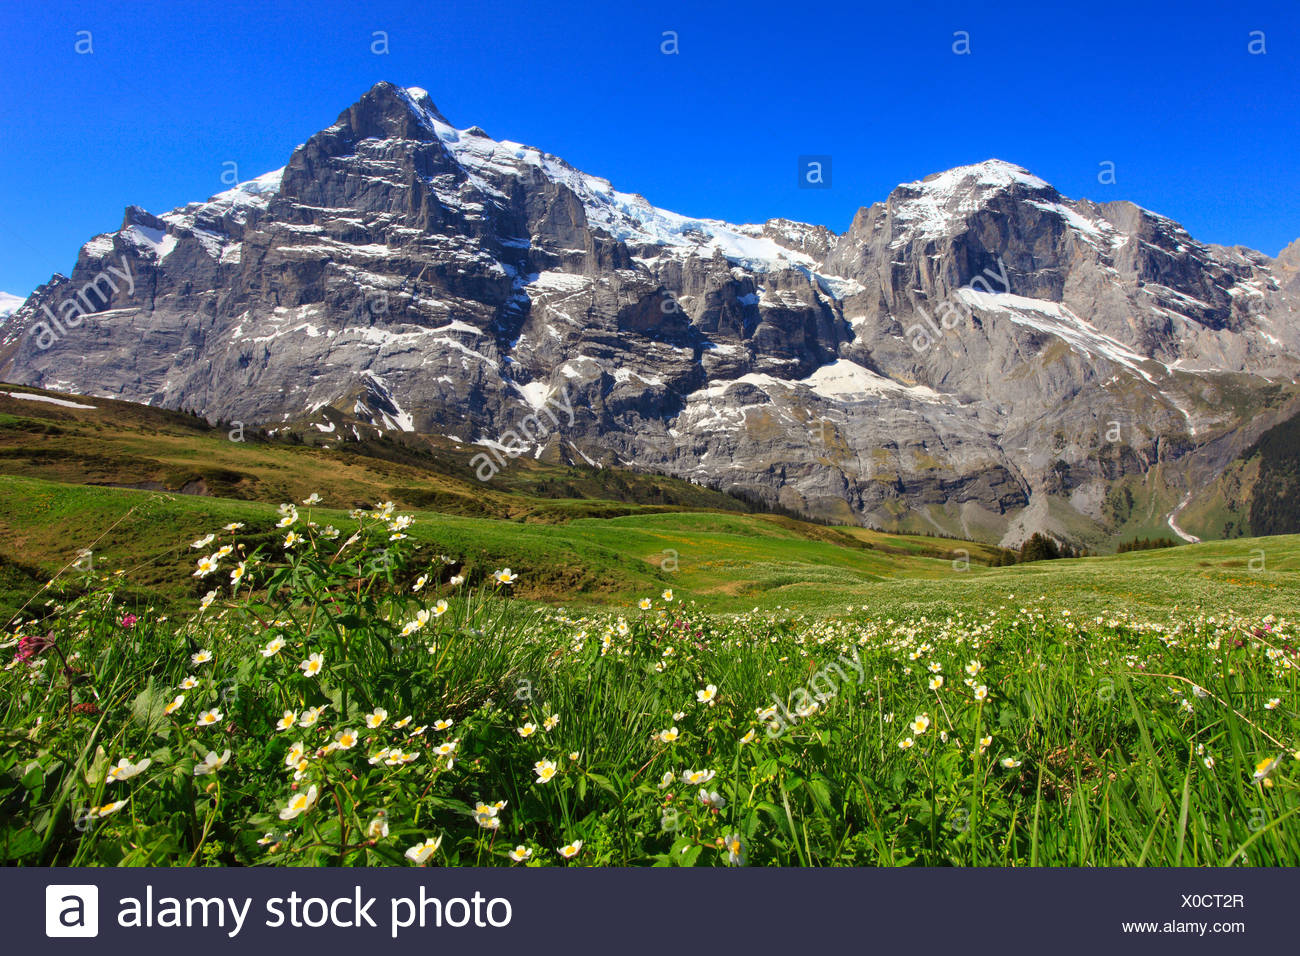 Alp, alps, flora, view, mountain, mountains, mountain flora, mountain spring, mountain massif, Bern, Bernese Oberland, flowers, - Stock Image